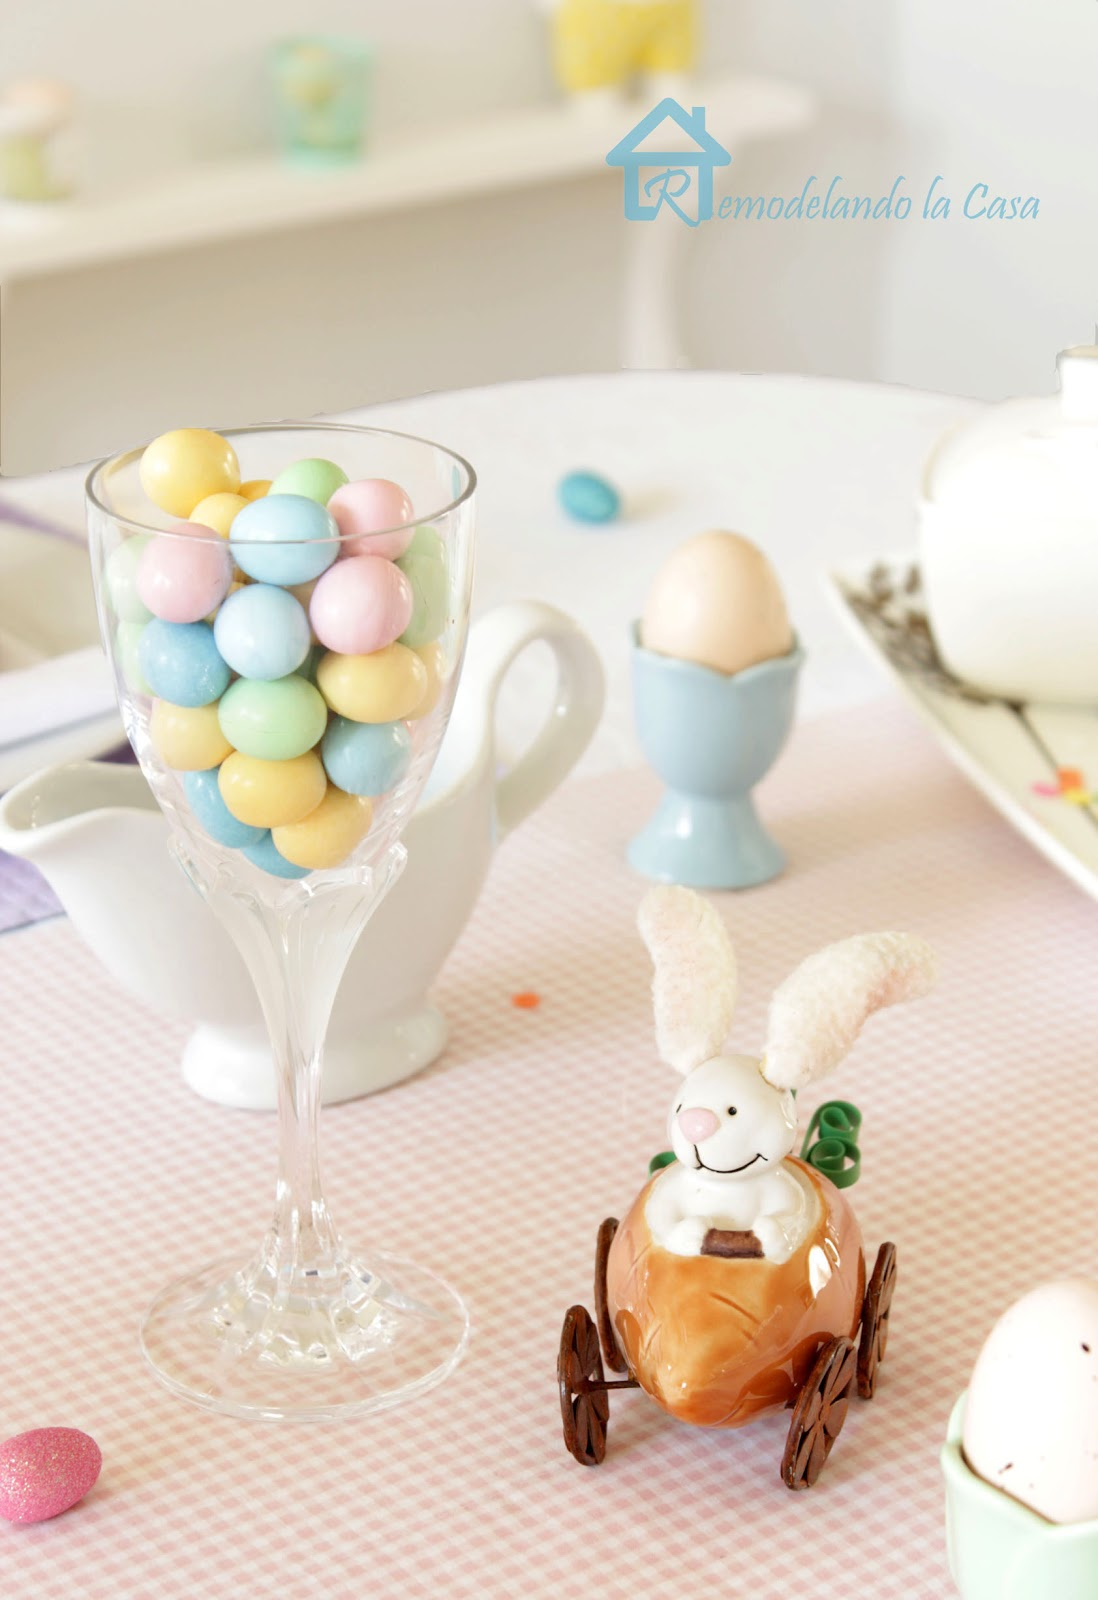 Easter tablescape with bunny in carrot car, glass full of candies